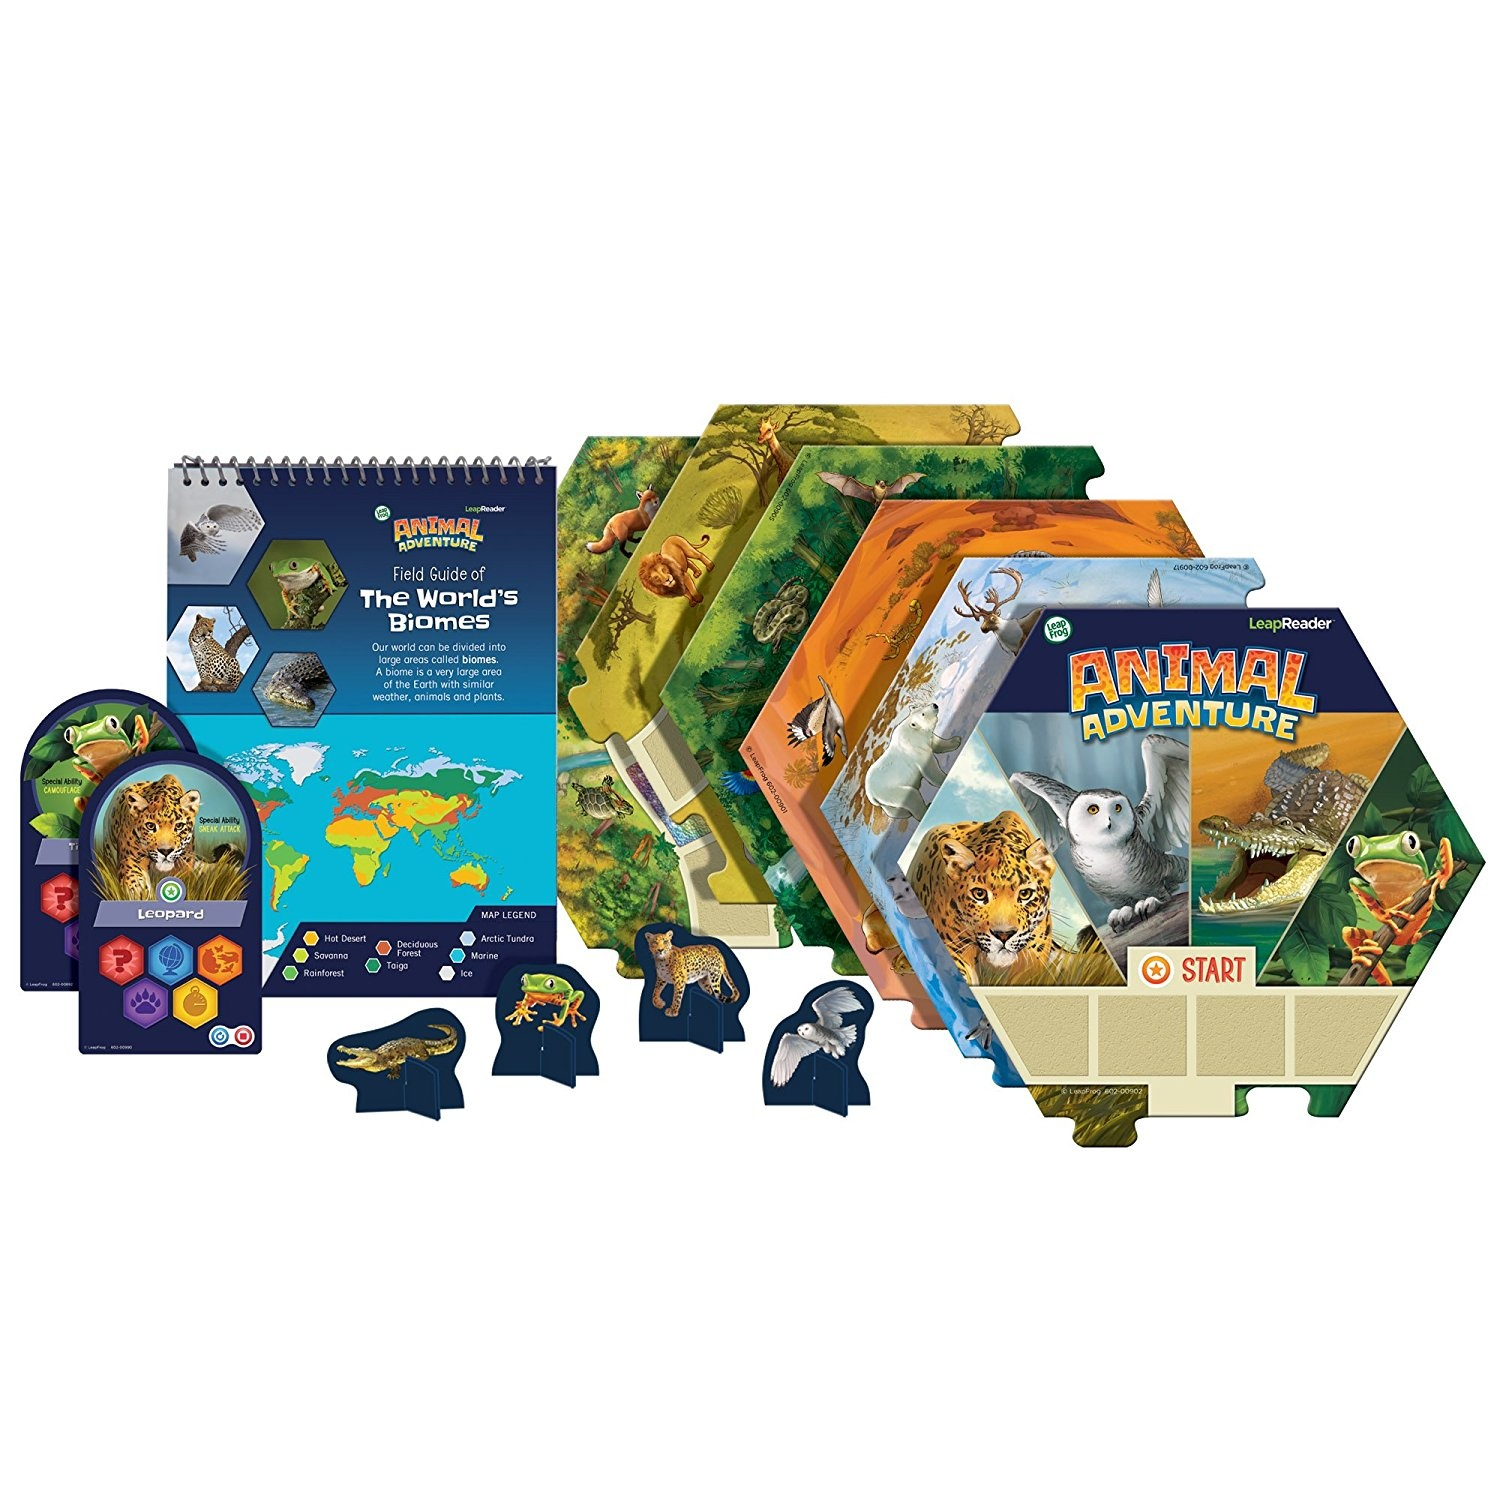 Leapfrog leapfrog leapreader animal adventure interactive board game toy gumiabroncs Image collections